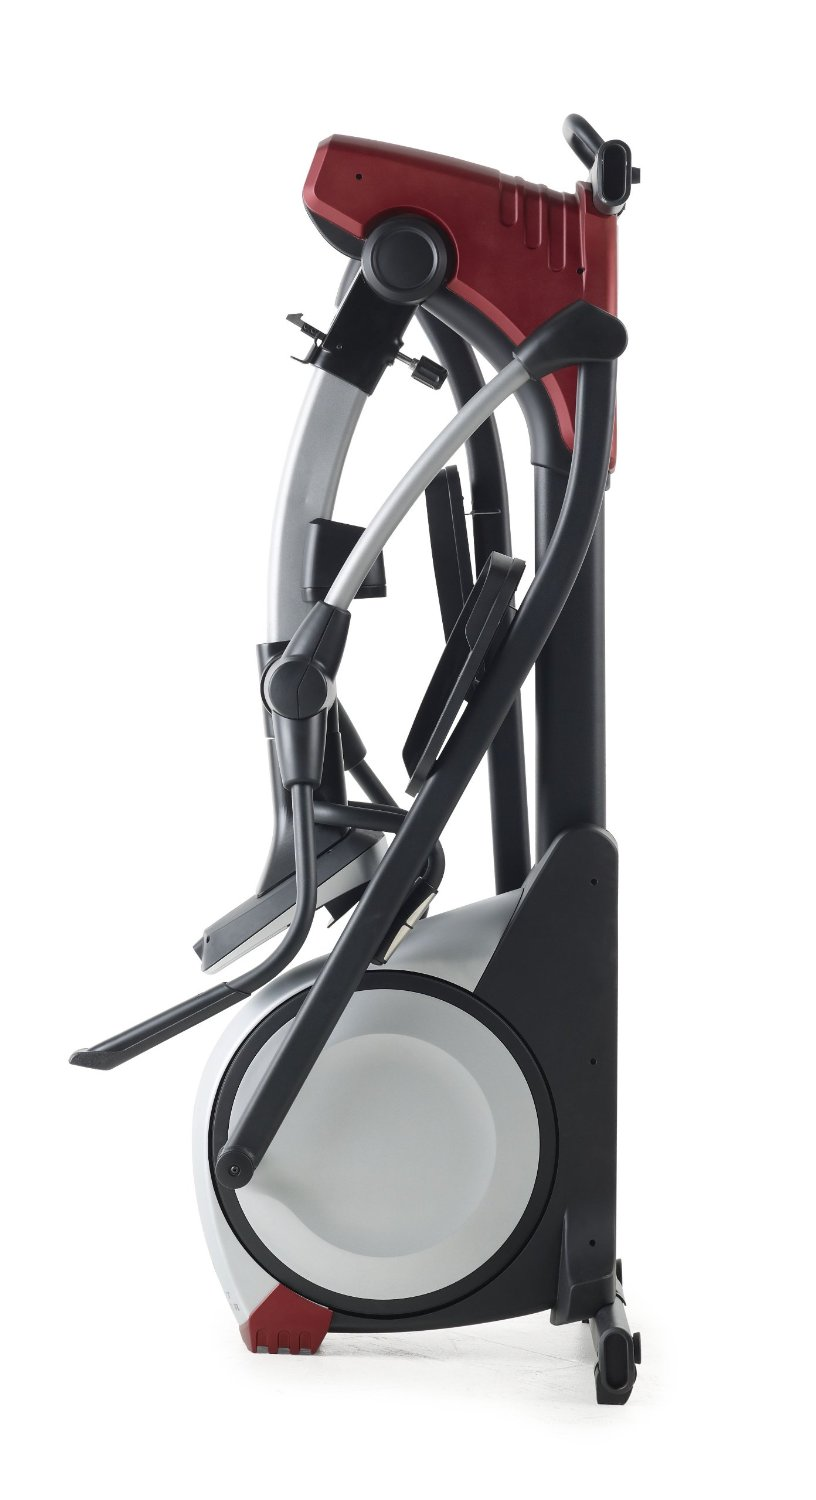 proform smart strider elliptical trainer review and best price. Black Bedroom Furniture Sets. Home Design Ideas